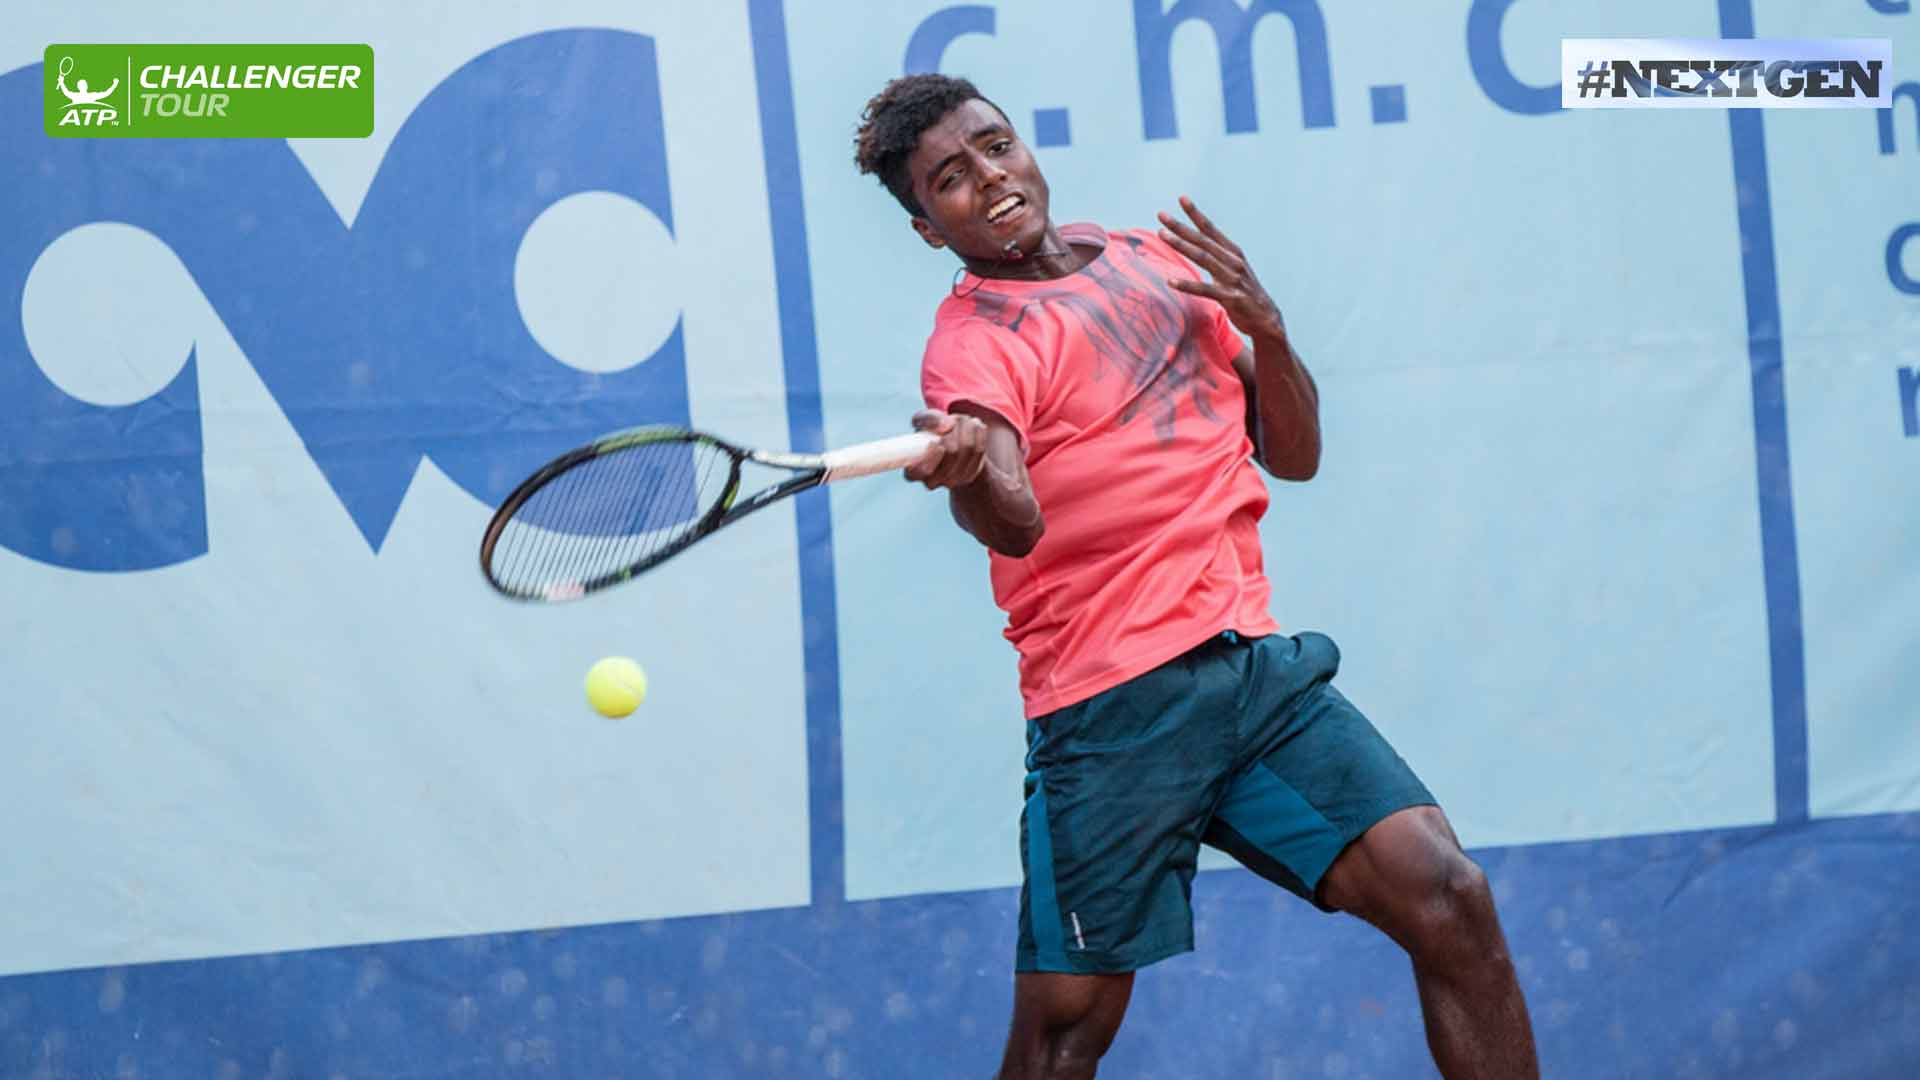 Elias Ymer is playing two clay court events in Italy this month on the ATP Challenger Tour.